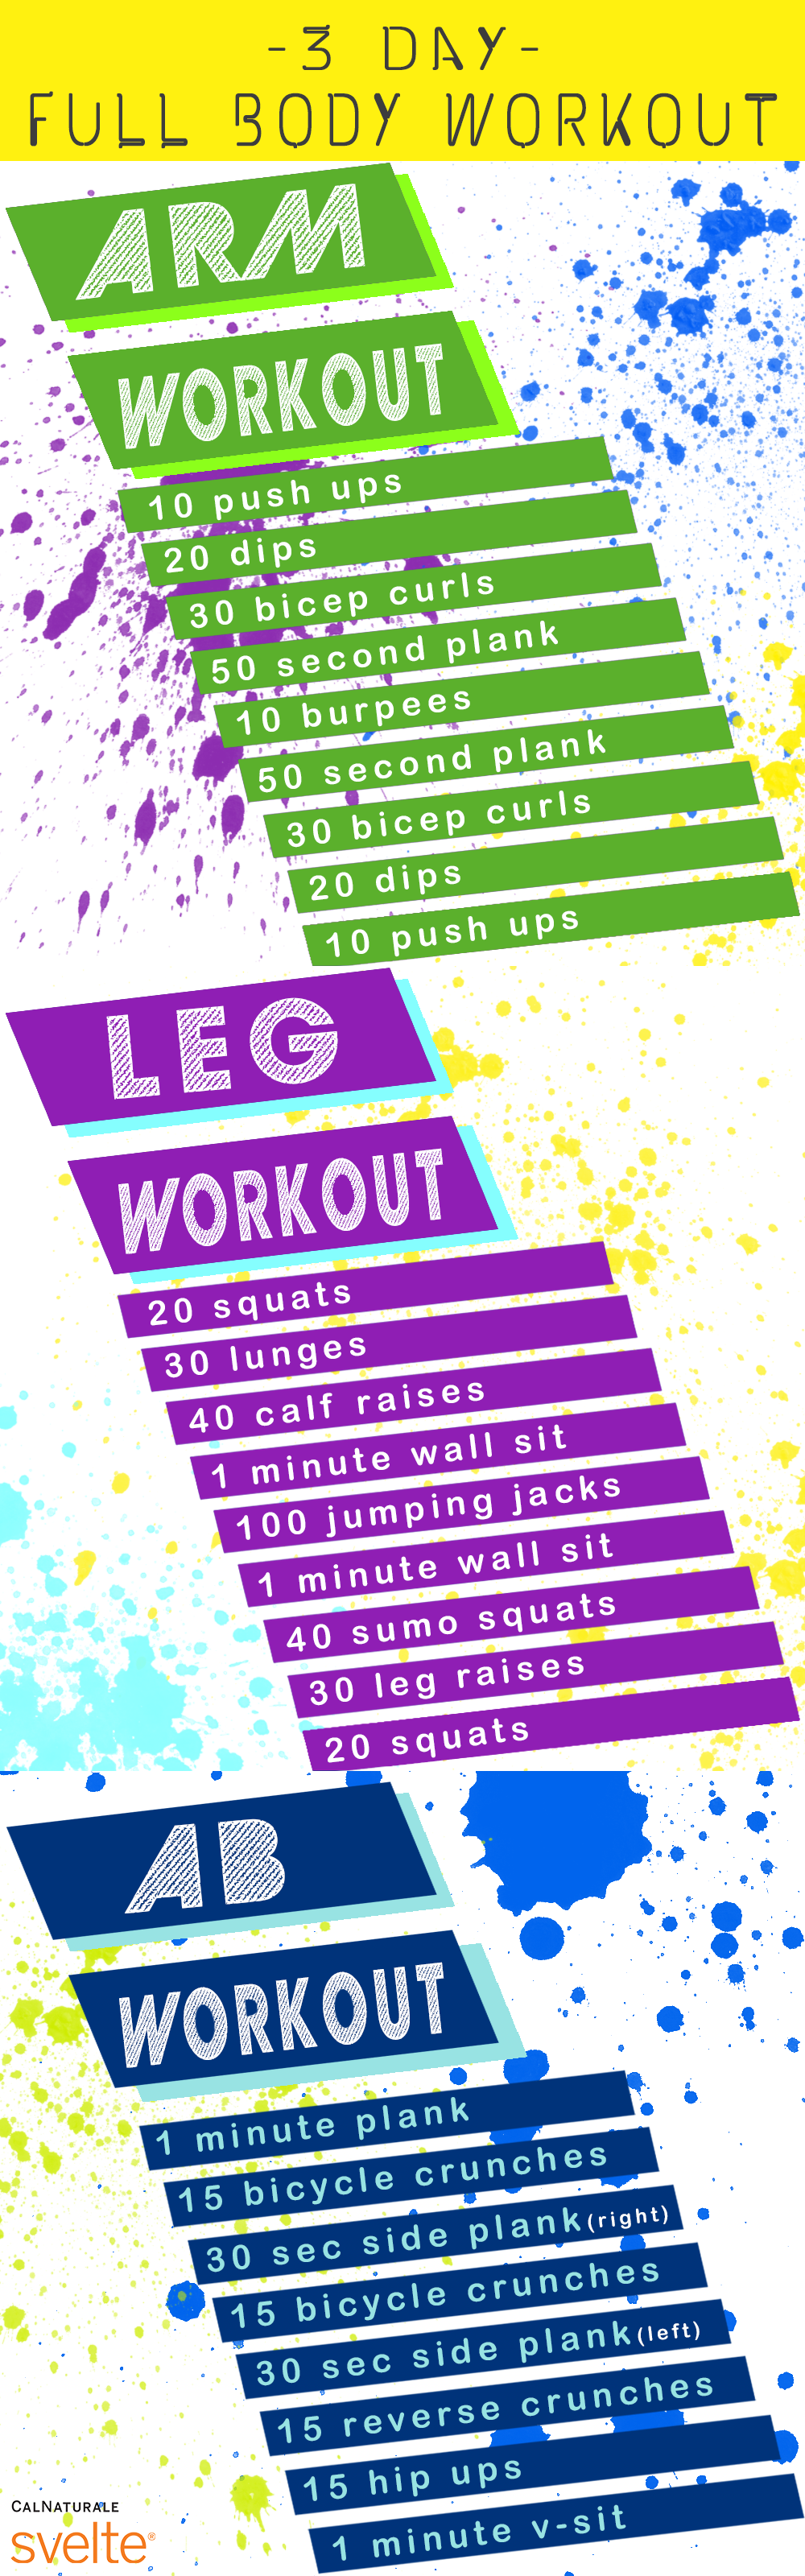 Use this handy day whole body workout program to tone your arms